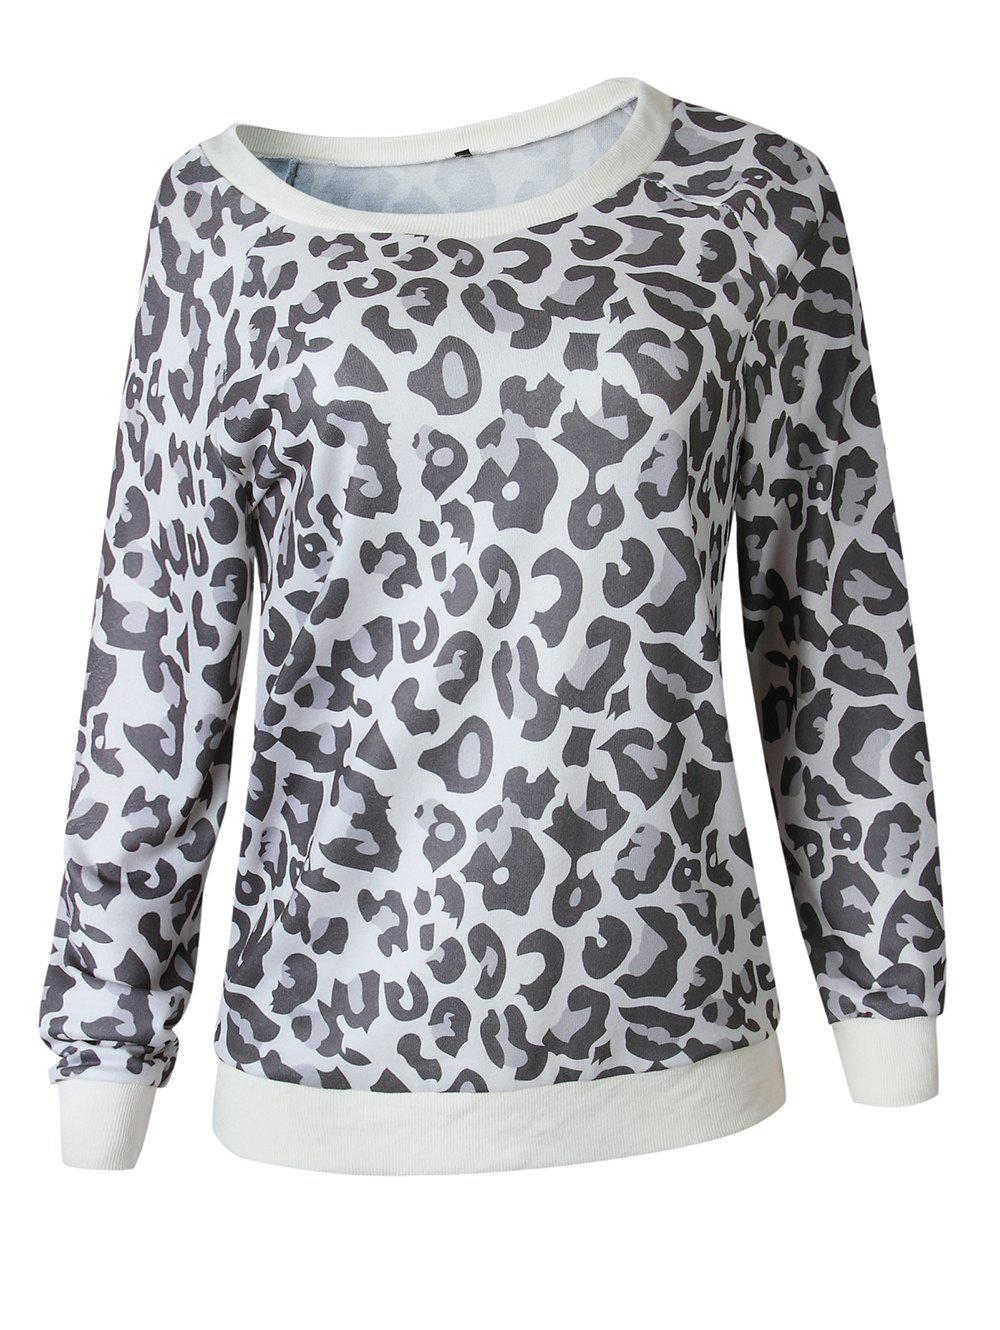 b2c6cdfb3313a Discount Women Casual Leopard Print Long Sleeve Sweatshirt Pullover Shirt  Top Blouse